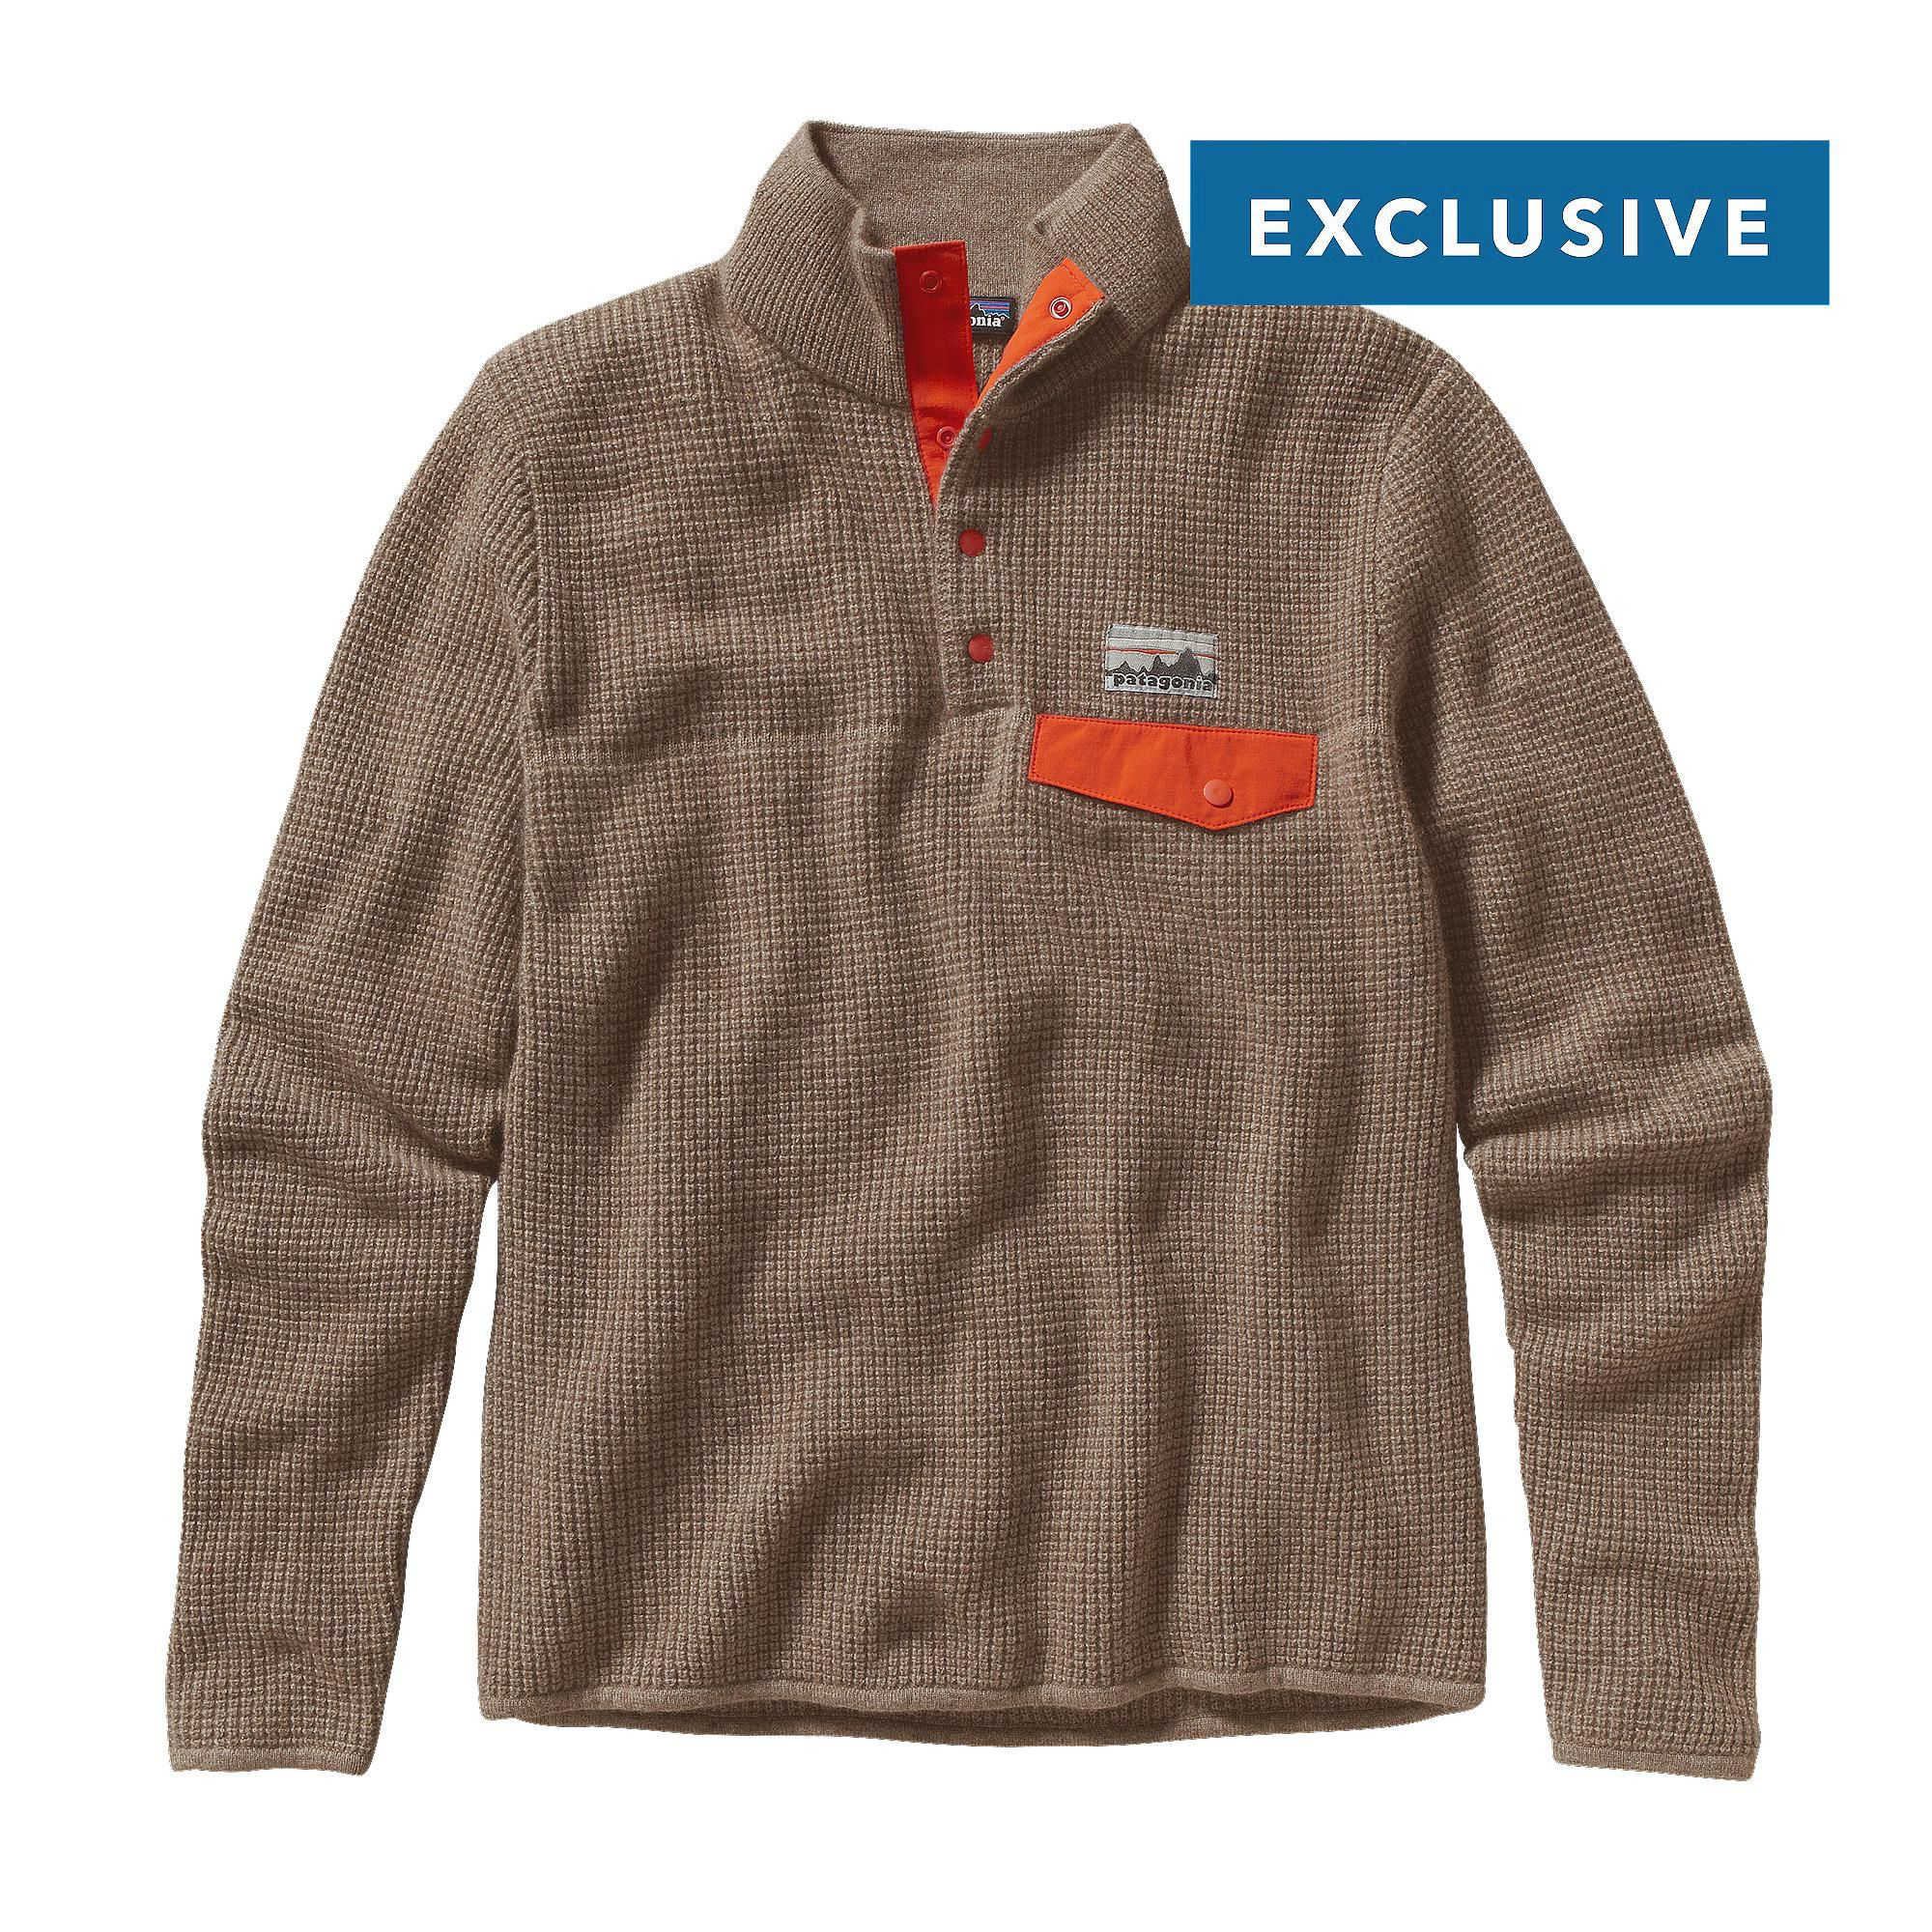 Hand Harvested And Minimally Processed The Patagonia Men